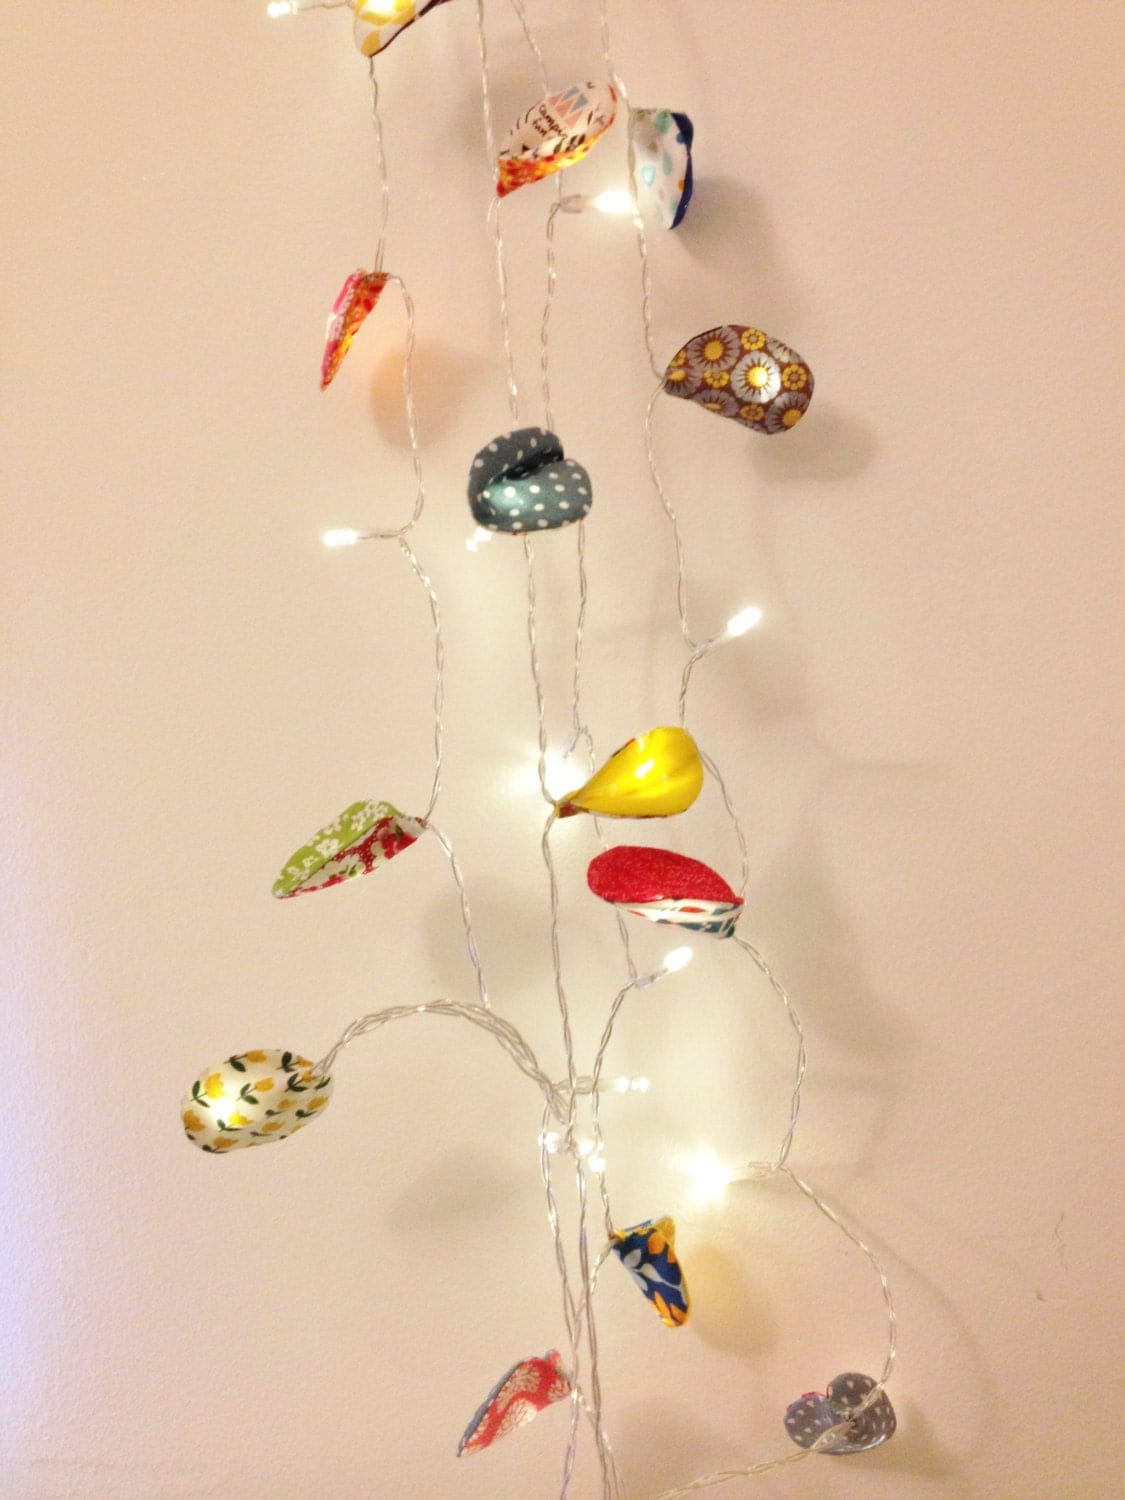 50 fairy lights string lights children s room by Zebrazoet on Etsy